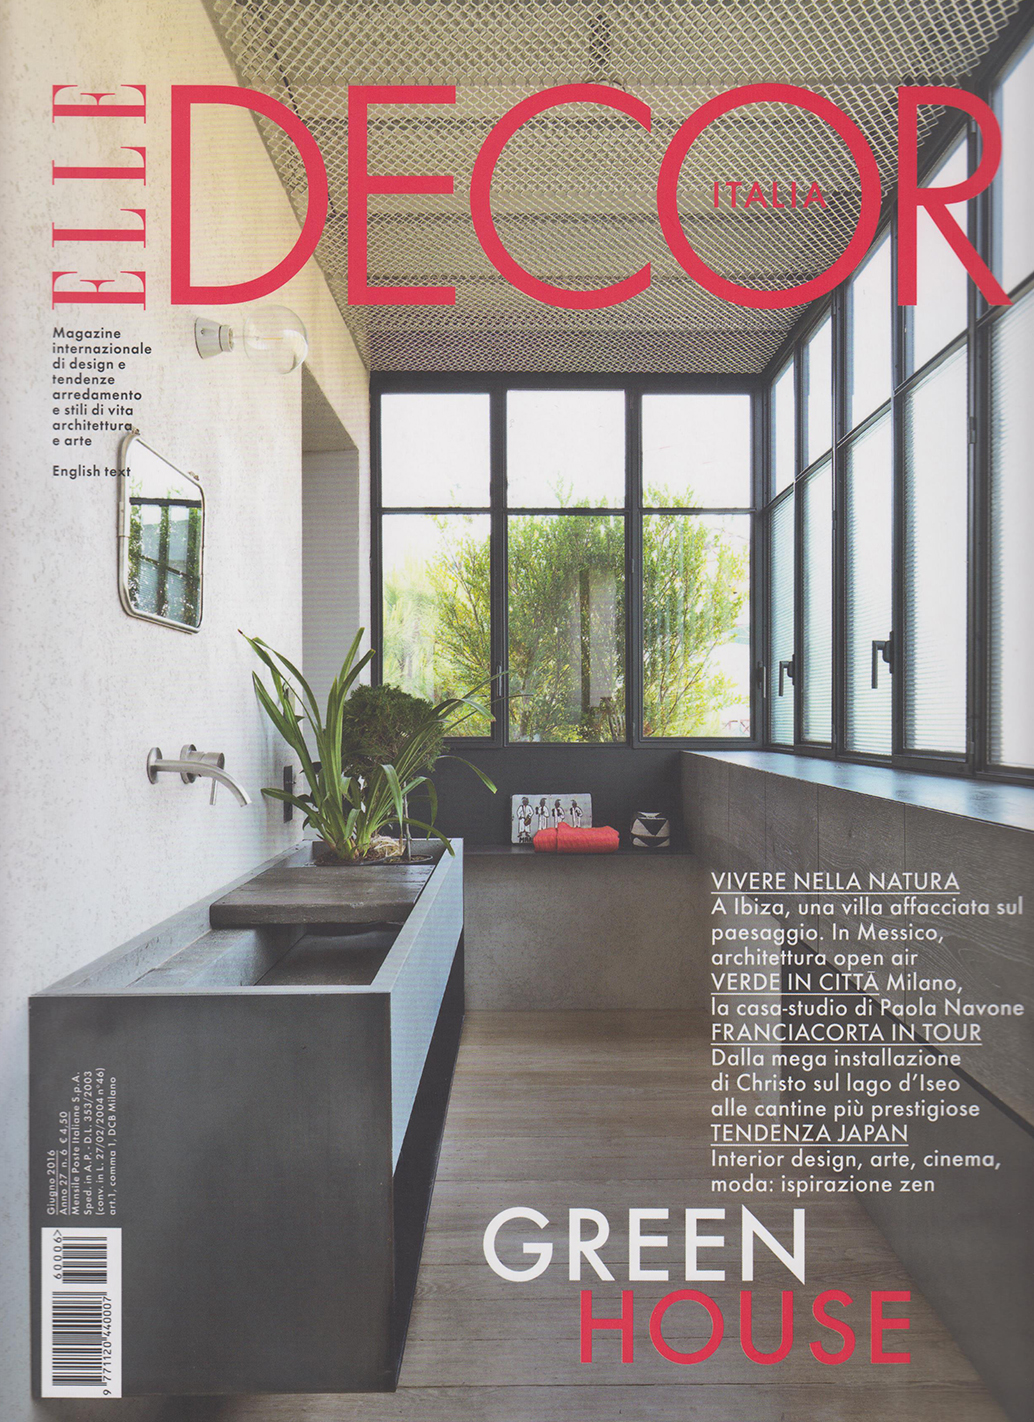 elledecor_web_cover.jpg